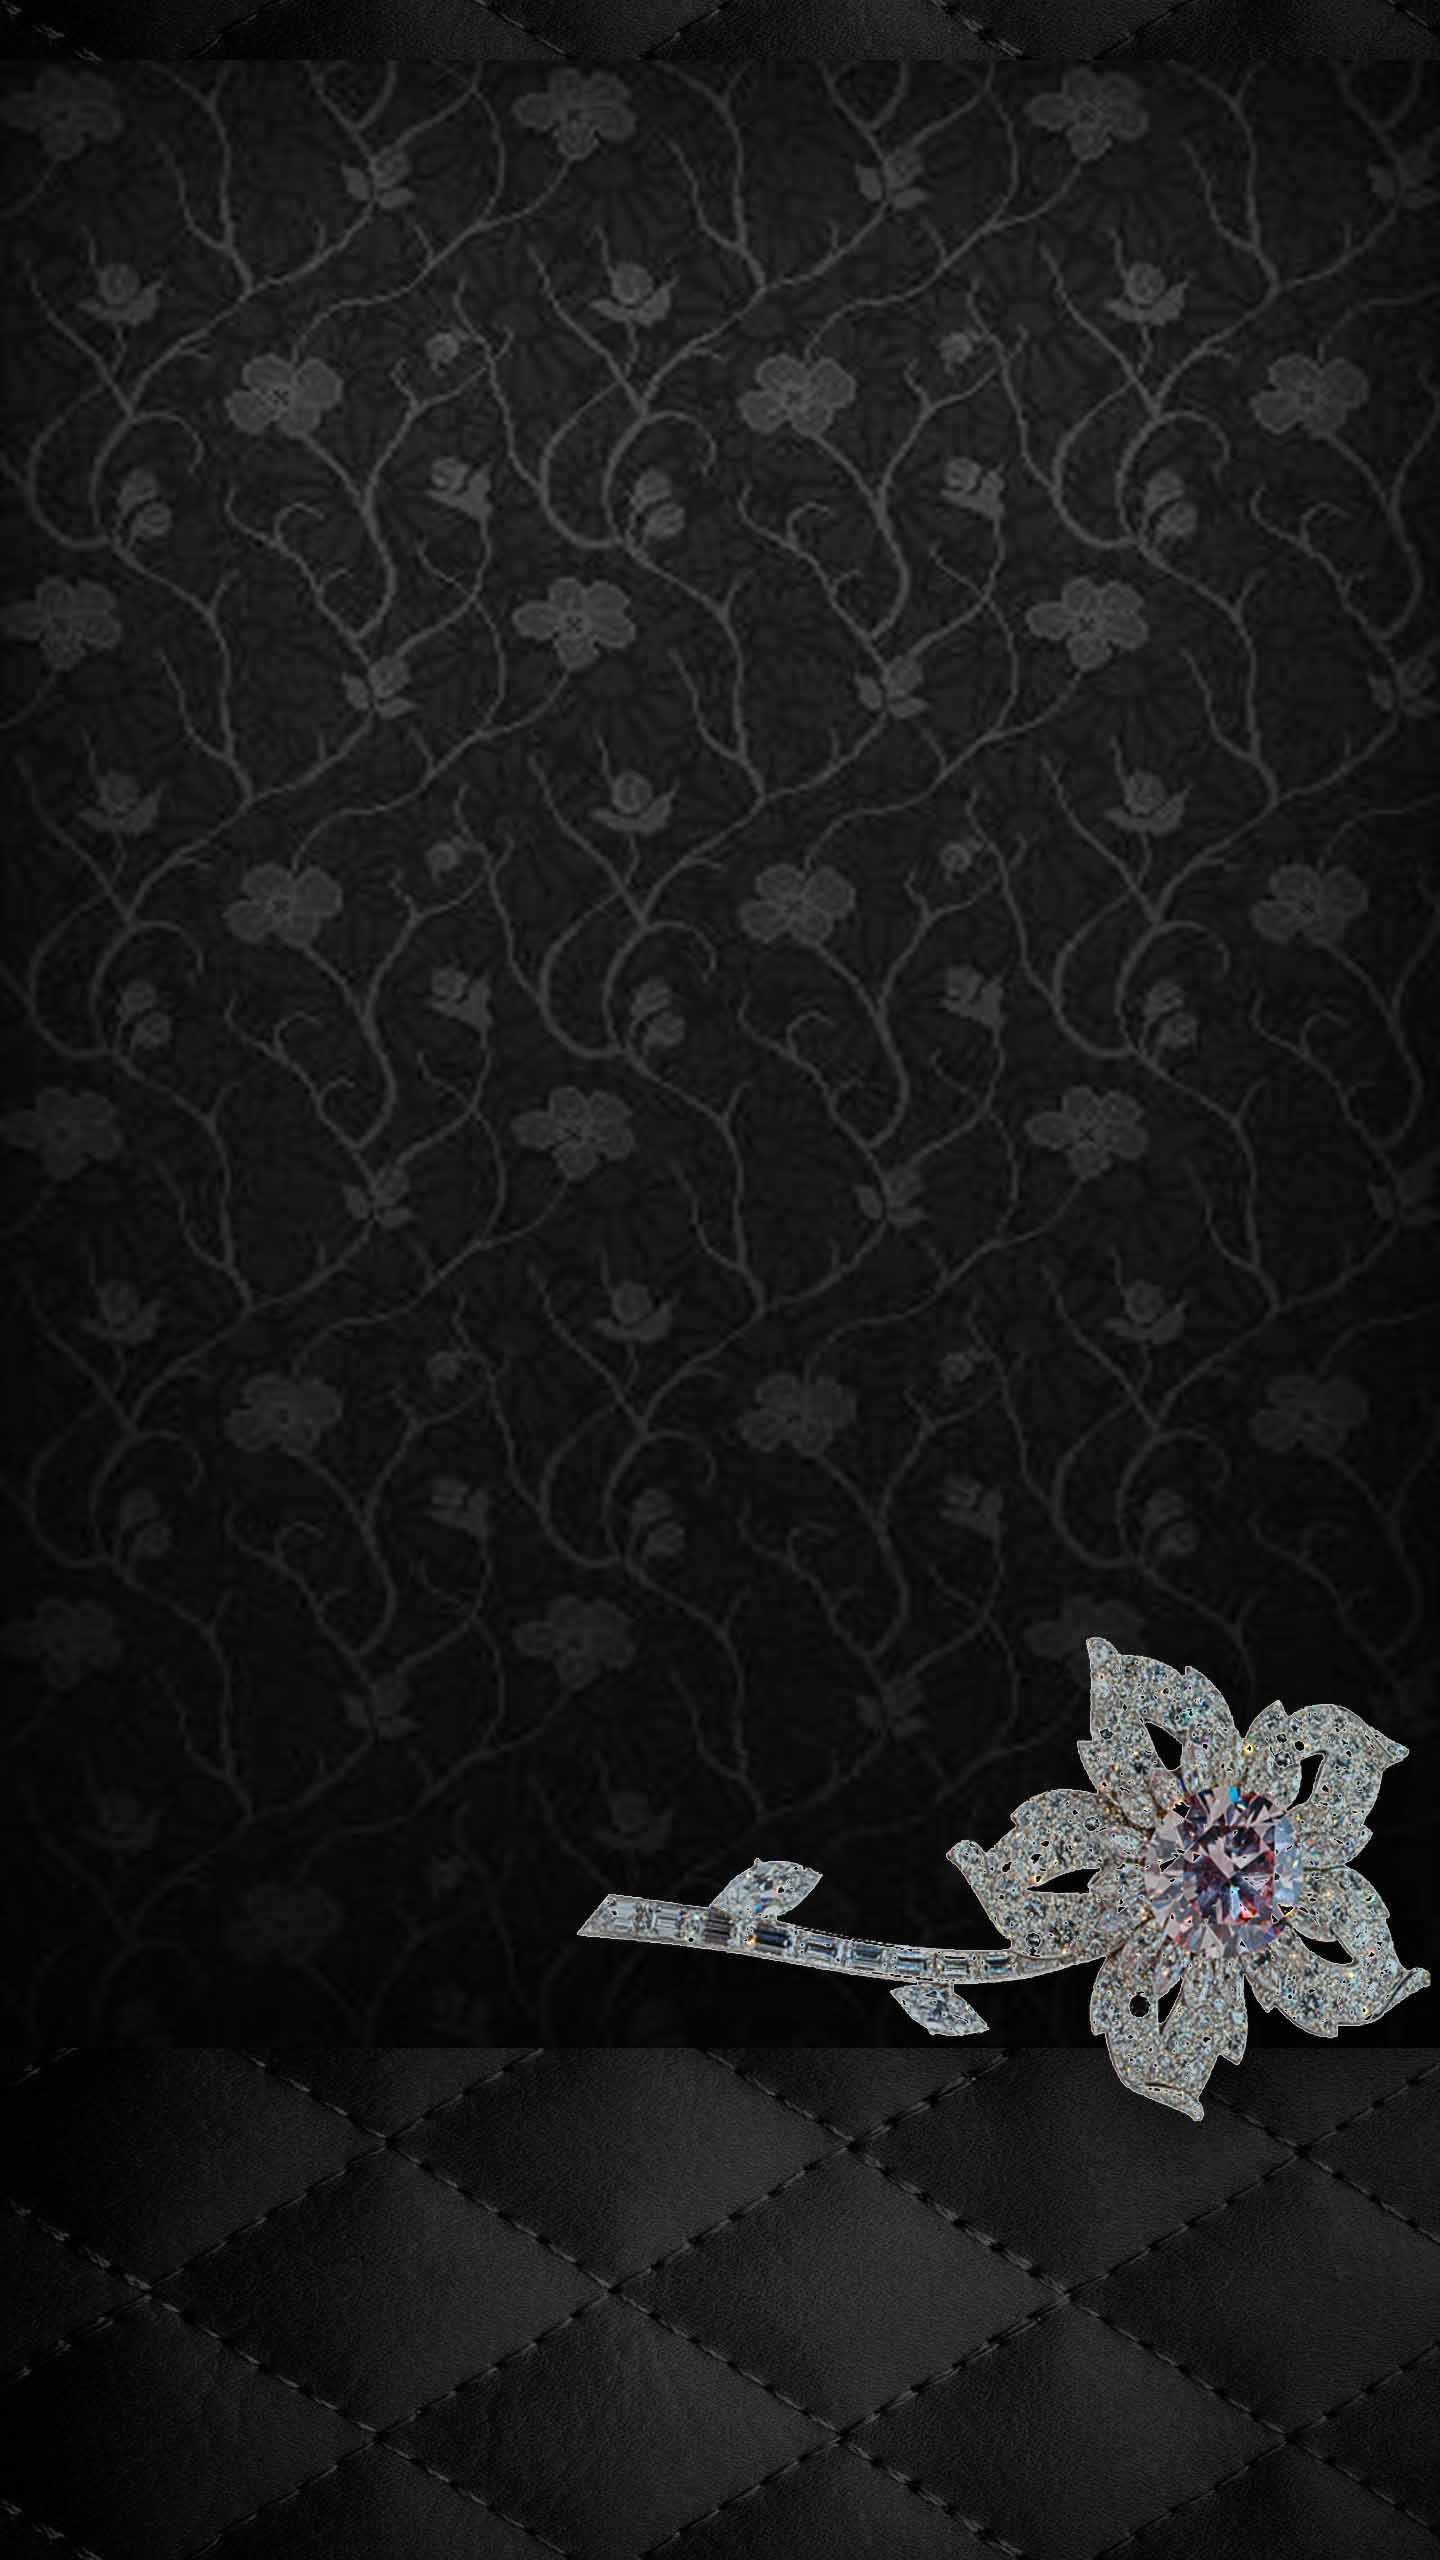 Dragonfly-9.jpg (1440×2560). Abstract BackgroundsIphone BackgroundsWallpaper  BackgroundsPhone WallpapersBlack …